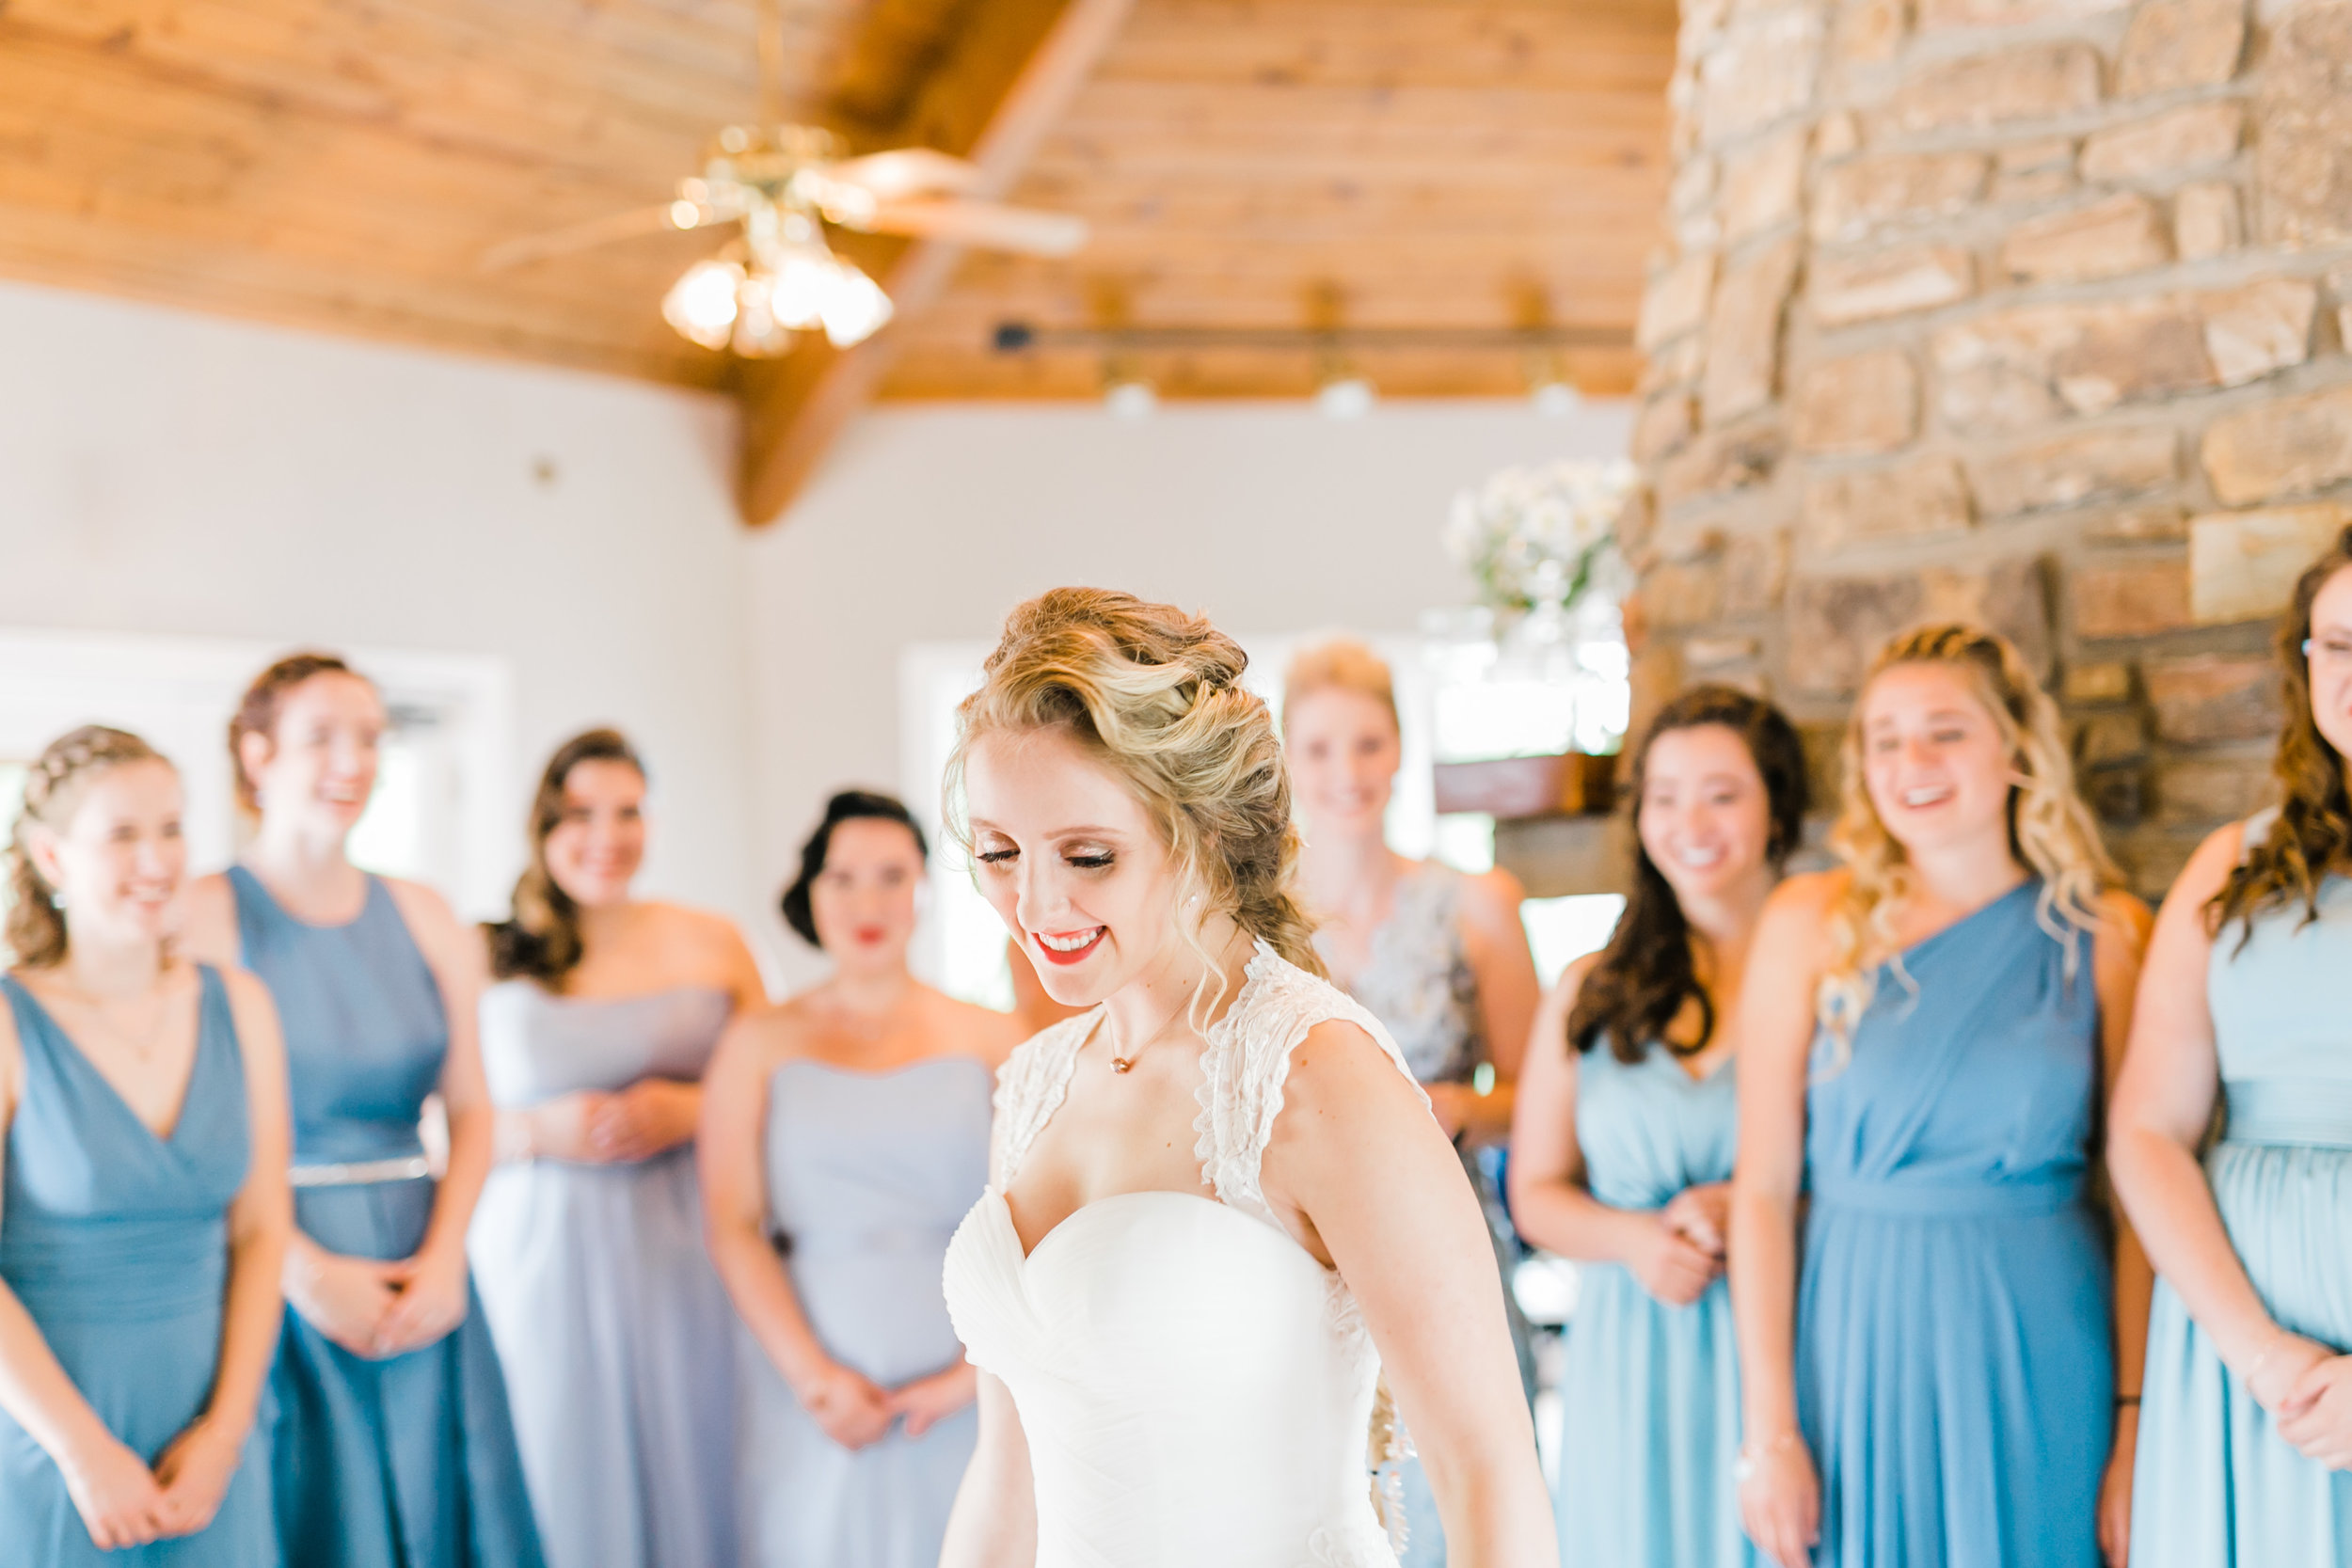 lobby Daras garden bridesmaids first look blue dresses